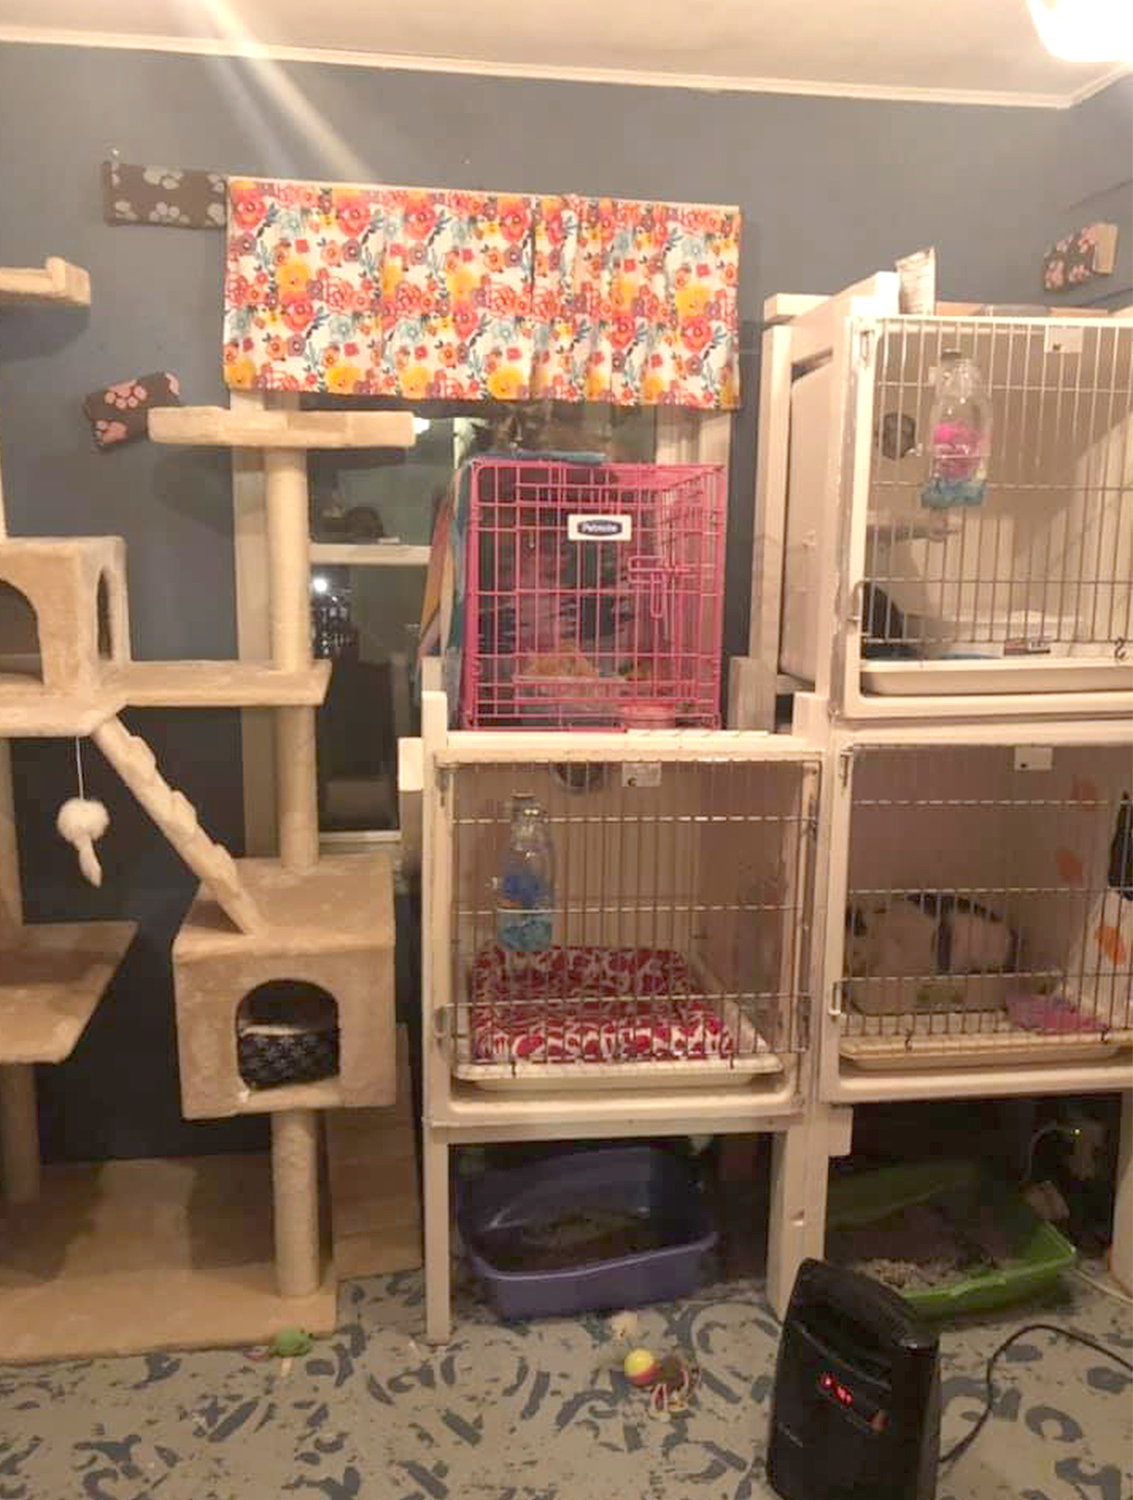 SMALL SHELTER — RTHRS Purrfect Paws Cat & Kitten Rescue, 3240 Oneida St., Chadwicks, takes in abused and neglected kittens and cats.